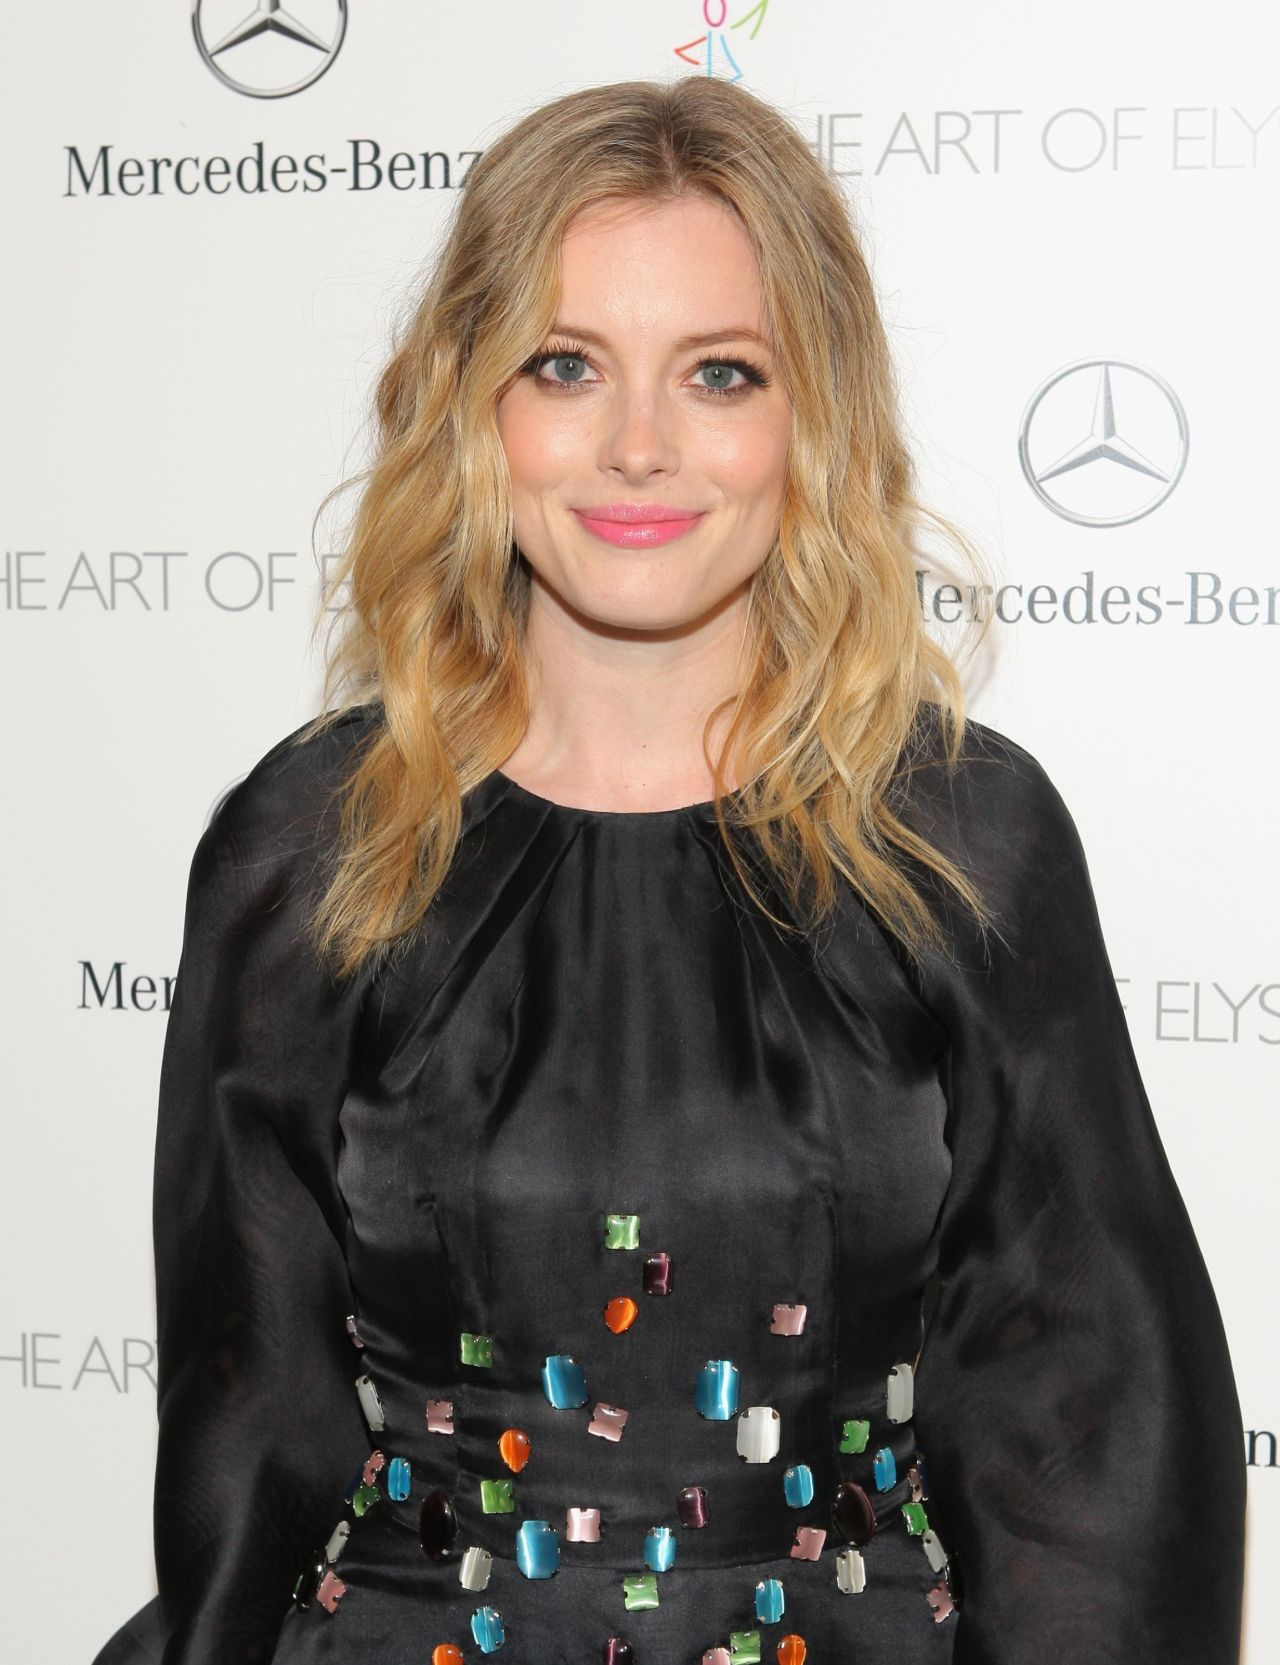 Gillian Jacobs Attends The Art of Elysium HEAVEN Gala in Los Angeles